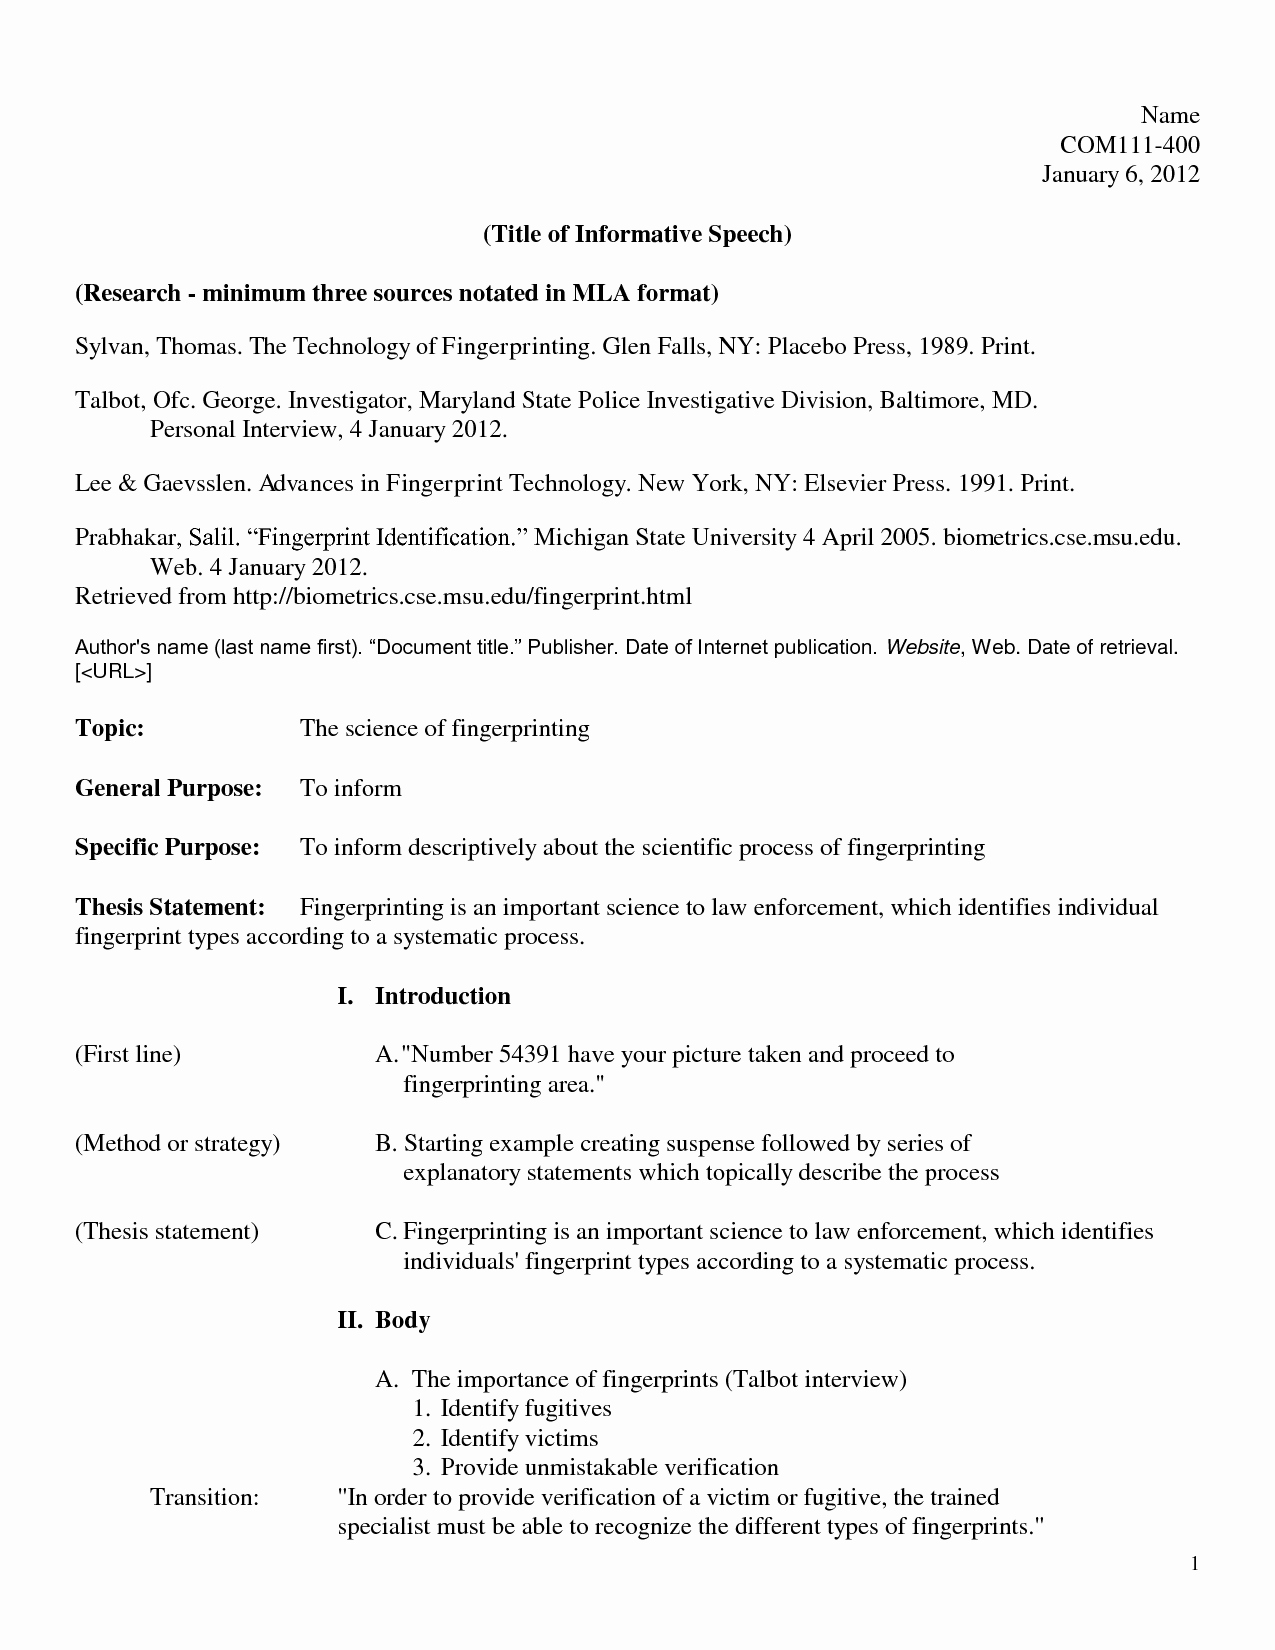 Mla format Outline Template Awesome Mla format Speech Outline Sample Mla Outline 2019 01 28